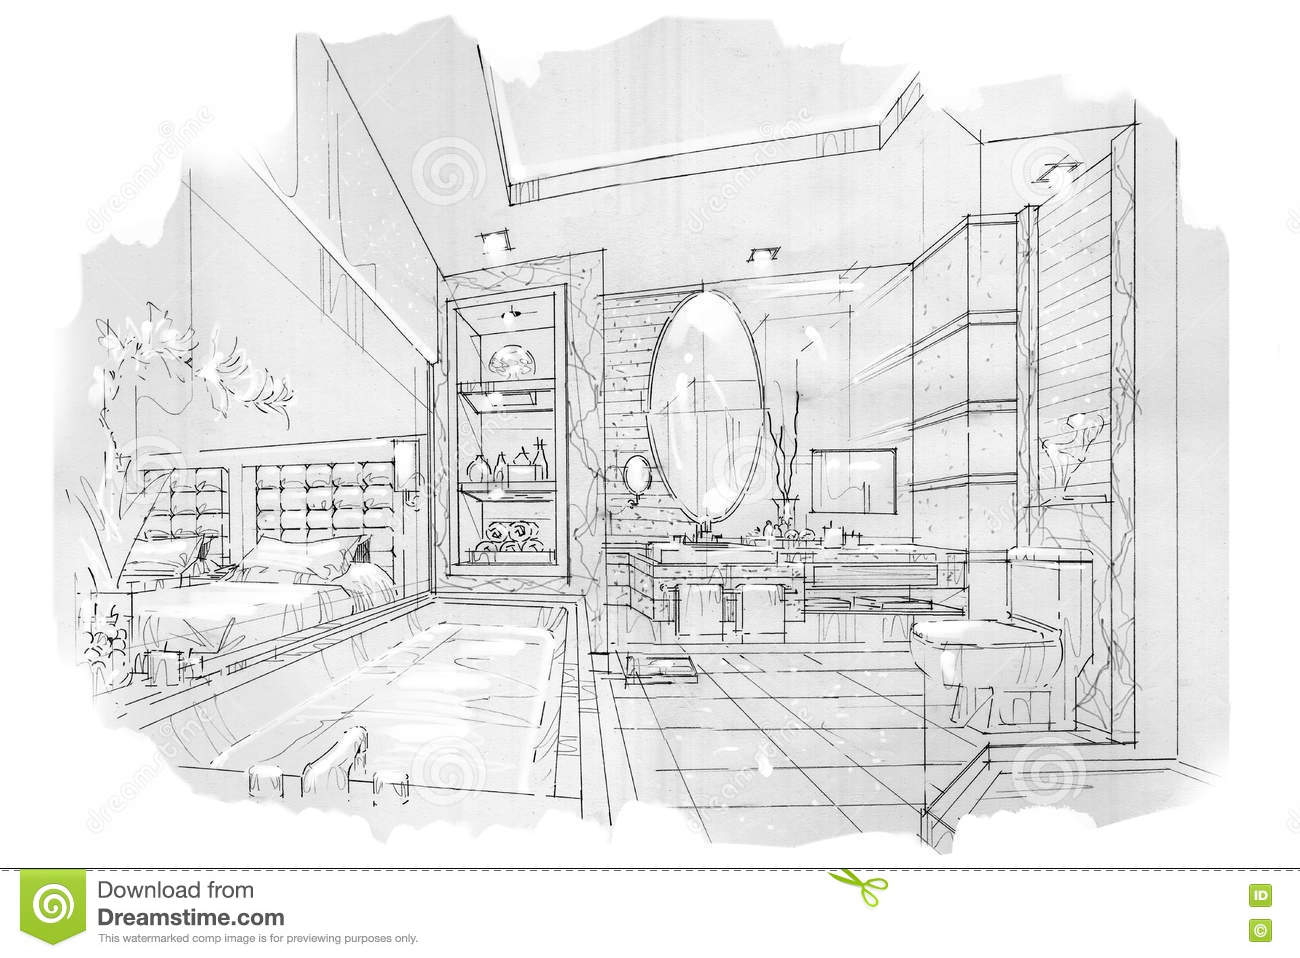 Bathroom perspective drawing - Sketch Perspective Interior Bathroom Black And White Interior Design